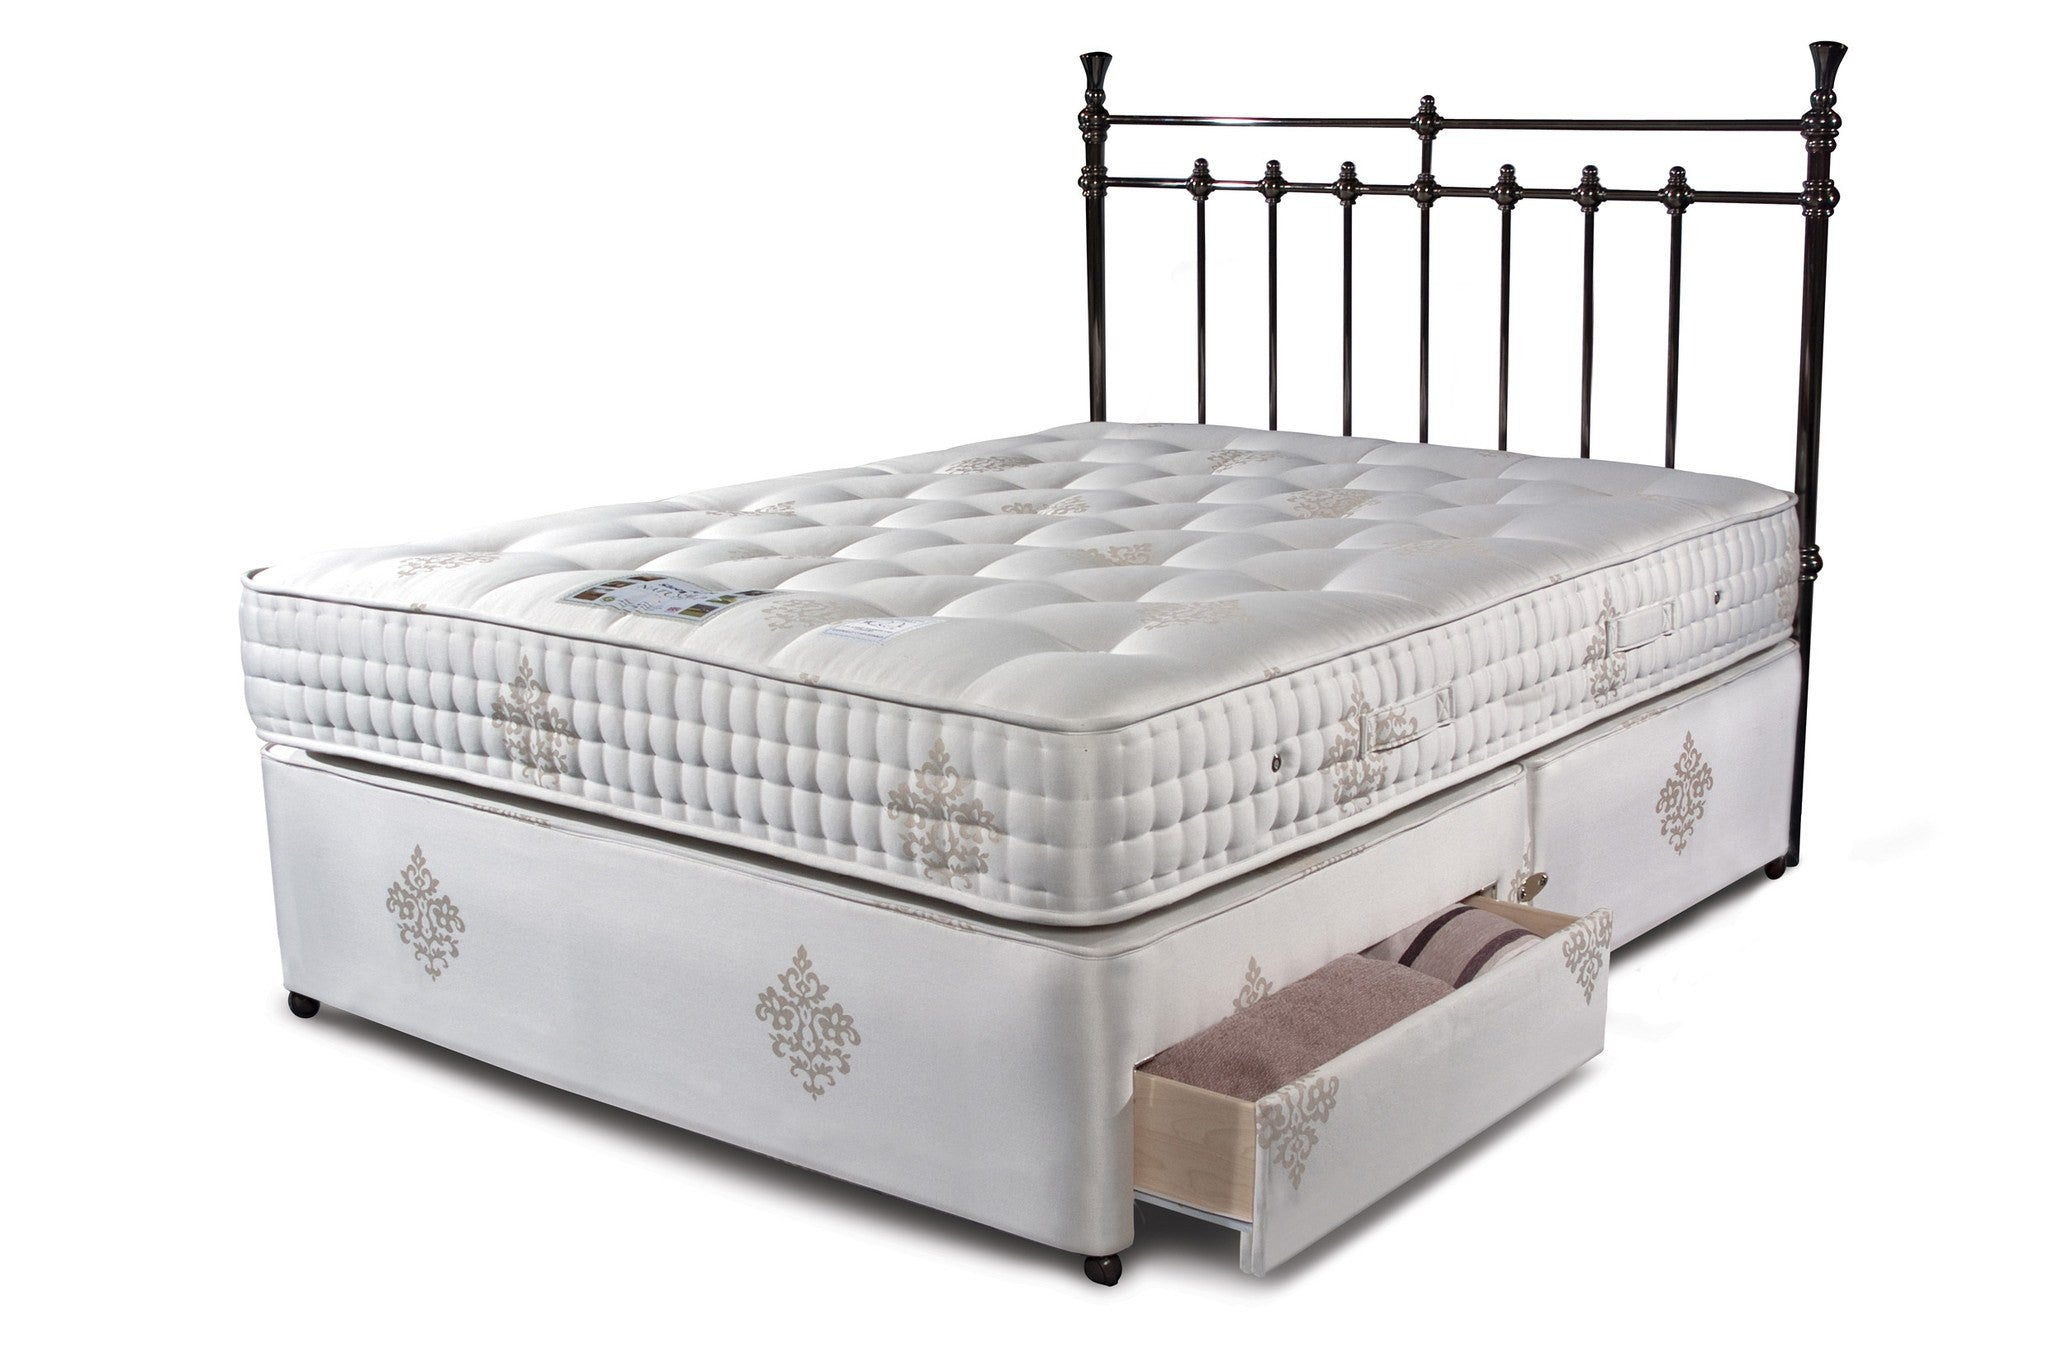 SLEEPEEZEE Bordeaux 2000 Divan Set